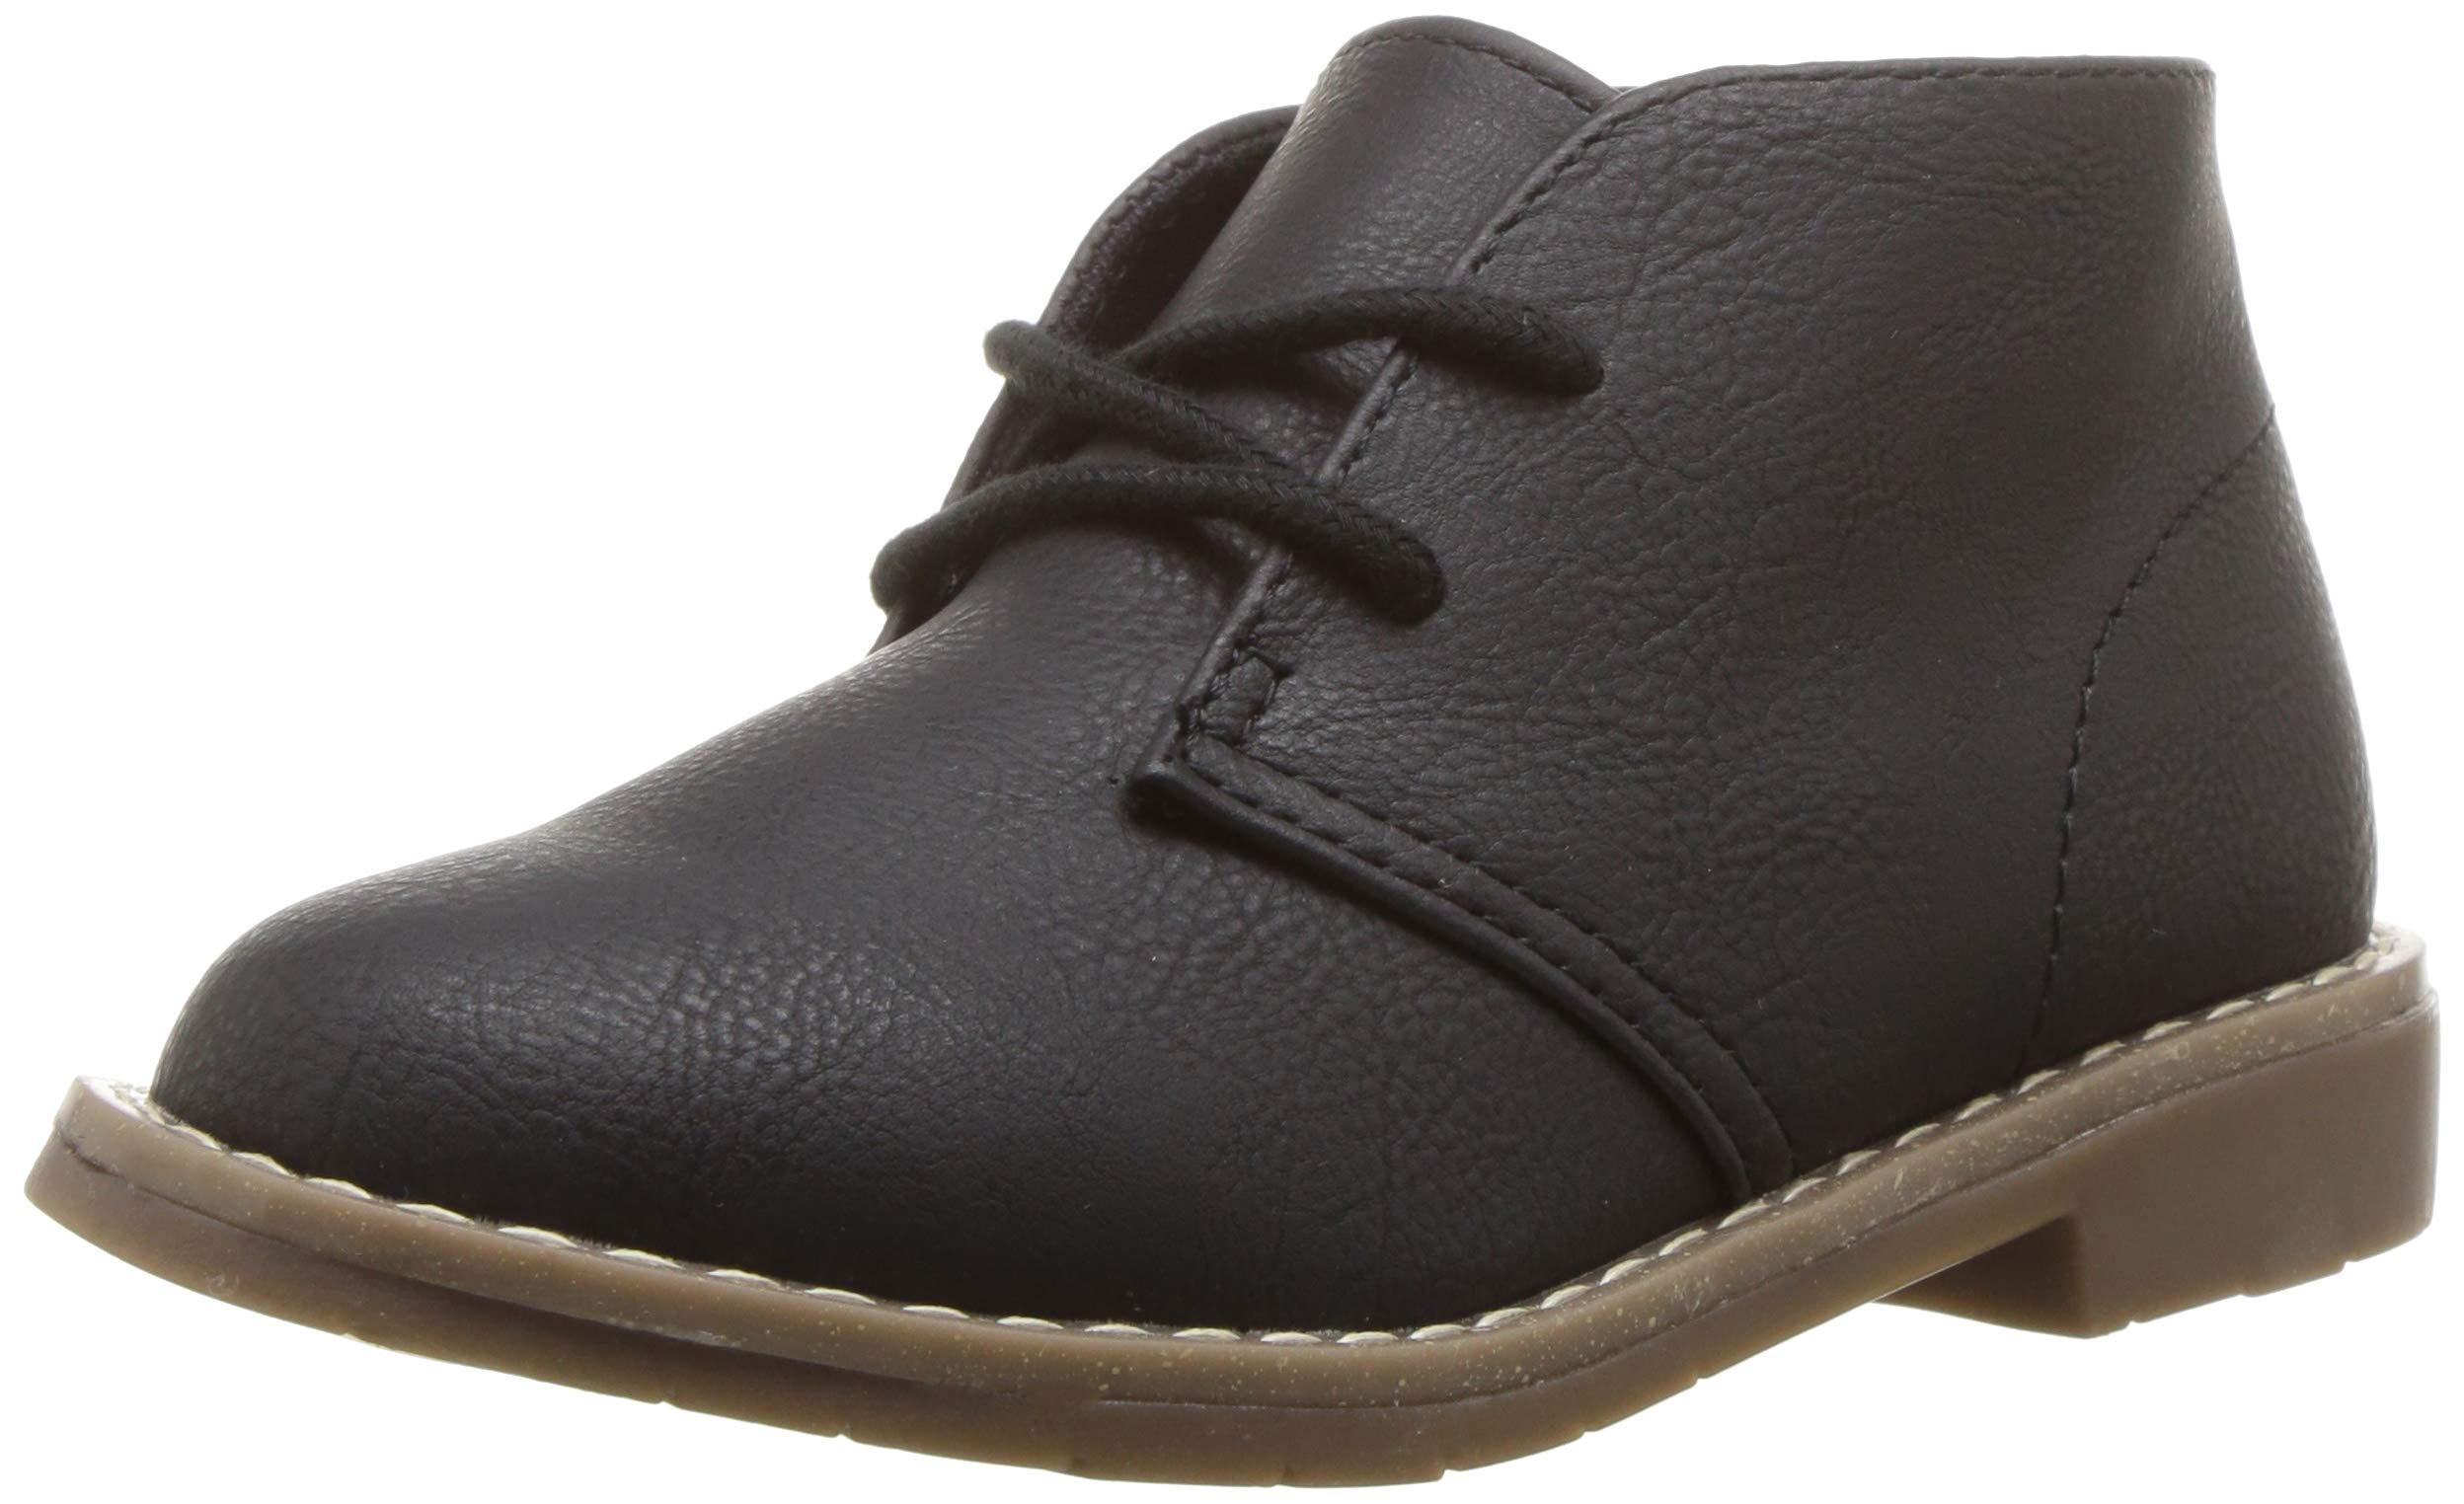 The Children's Place Boys' Fashion Boot, Black, TDDLR 8 Child US Toddler